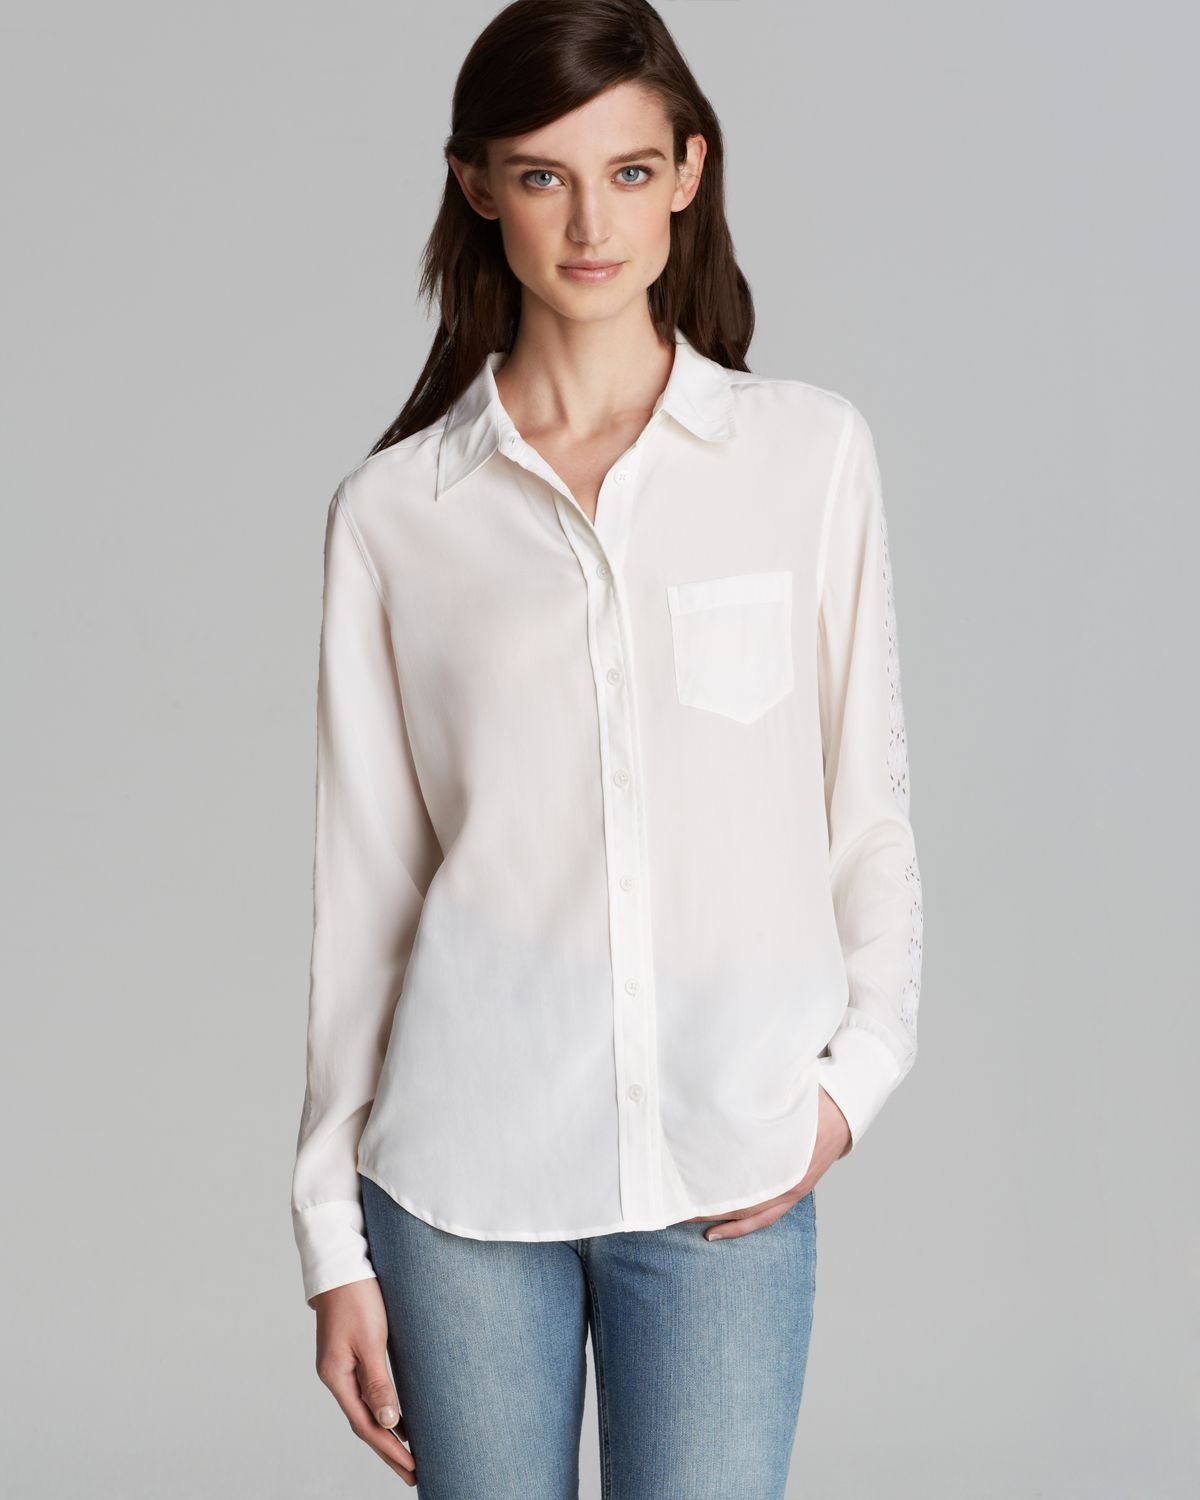 White Blouse Embroidered 110